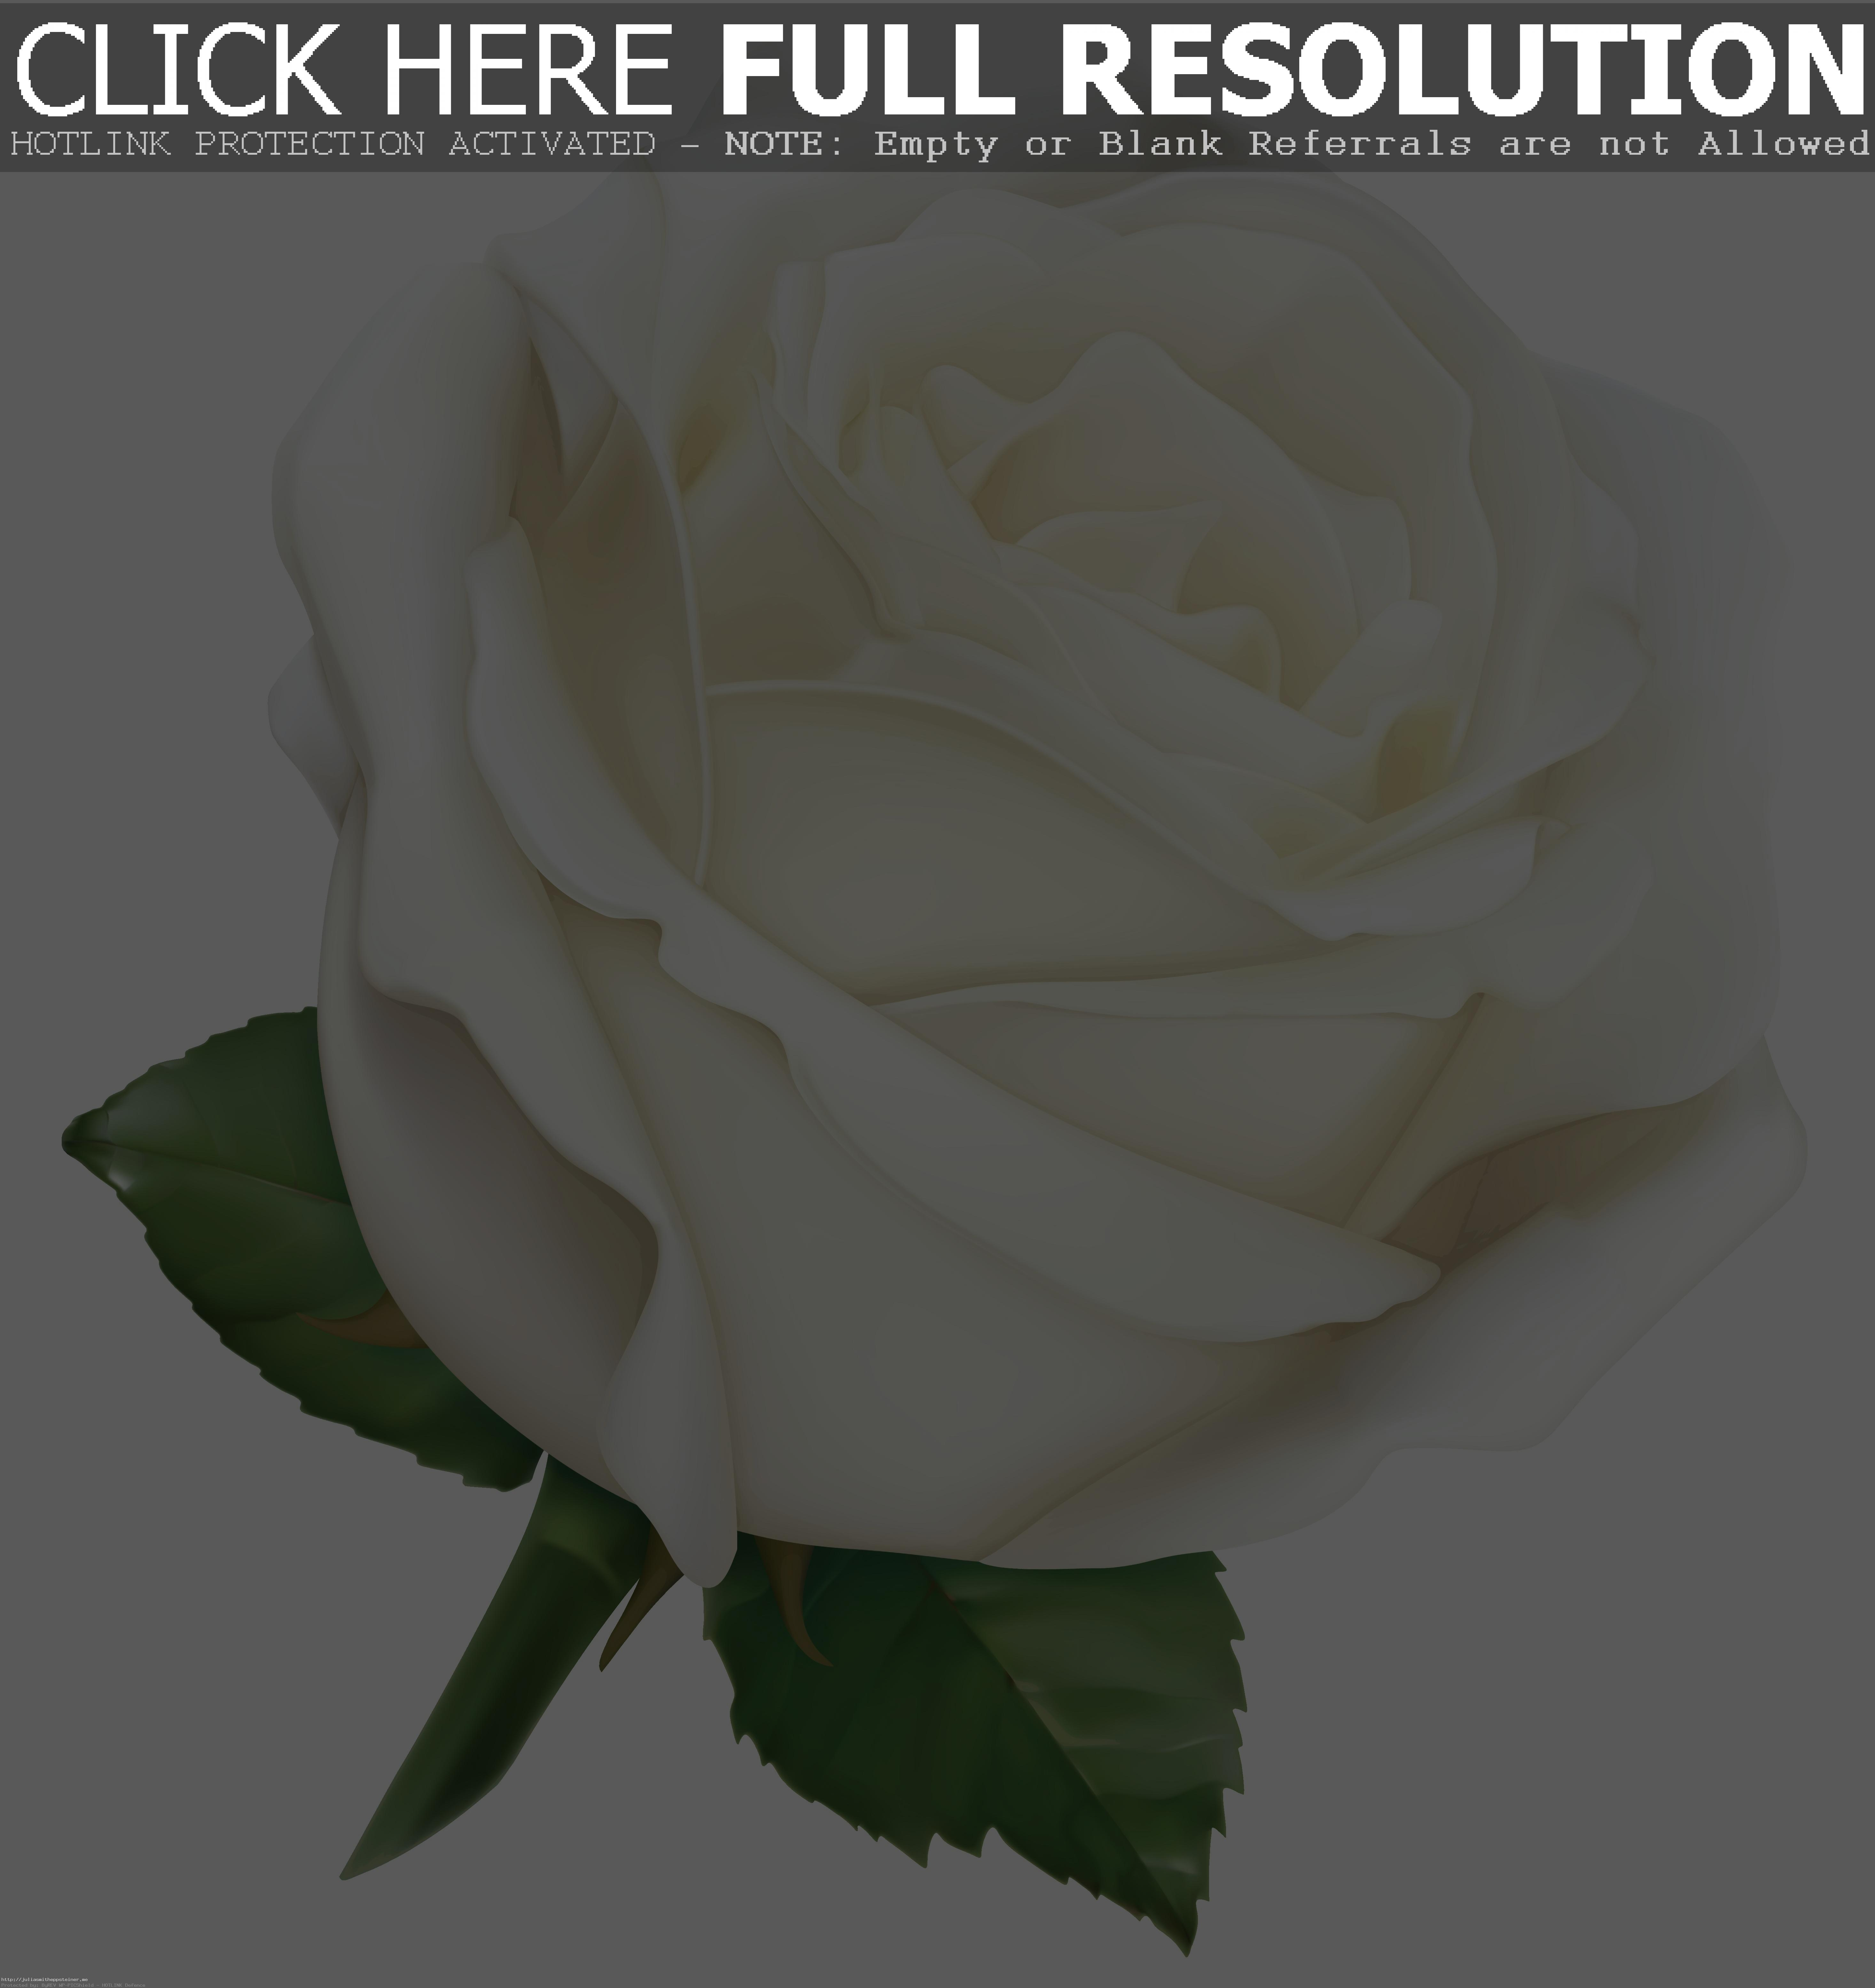 . ClipartLook.com Large White Rose PNG C-. ClipartLook.com Large White Rose PNG Clipart Image Gallery Yopriceville High ClipartLook.com -4